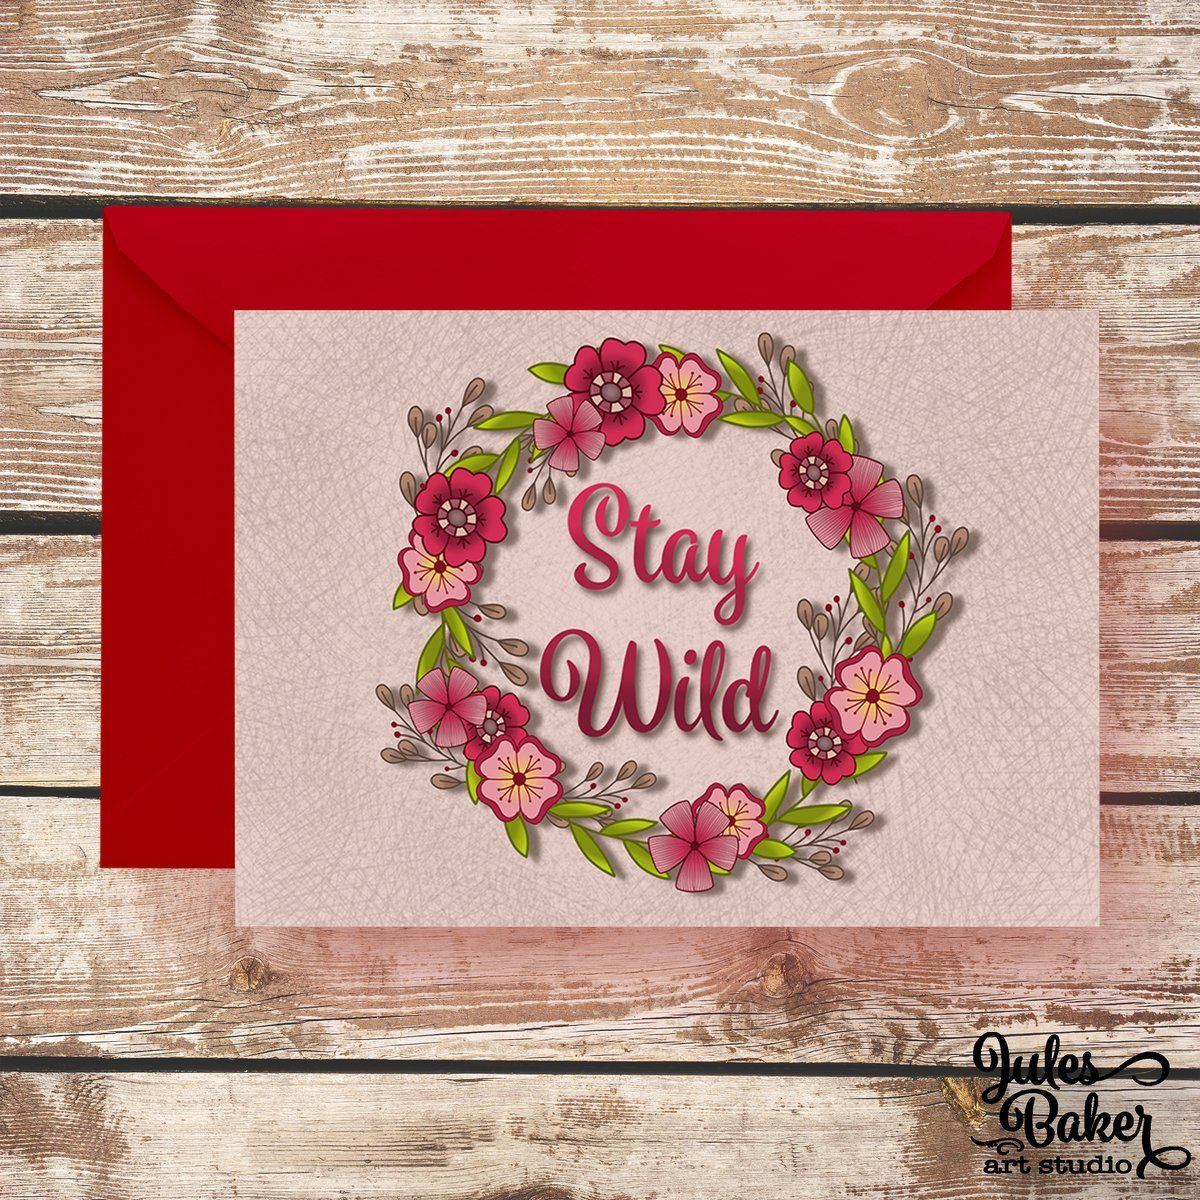 Stay Wild Greeting Card 5x7 A7 Inspirational Encouragement